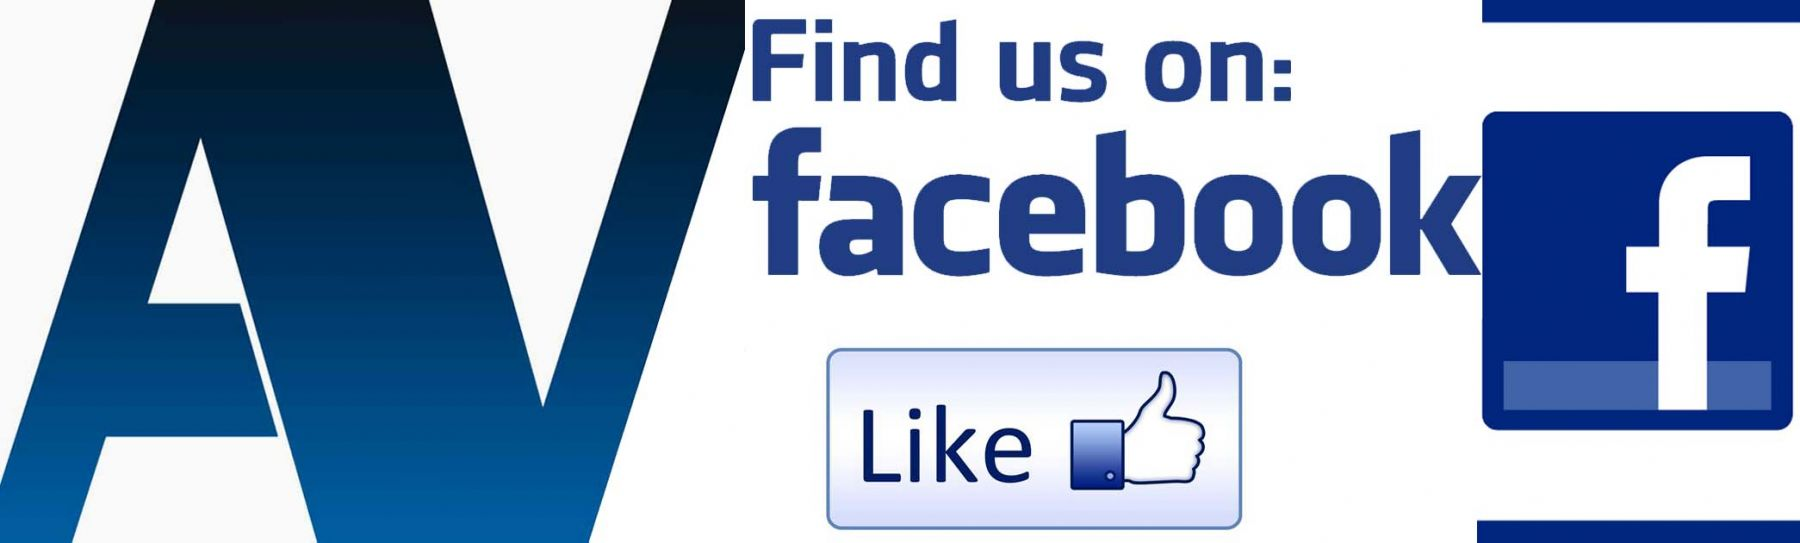 We Are Now on Facebook - Check in and Give Us a Li